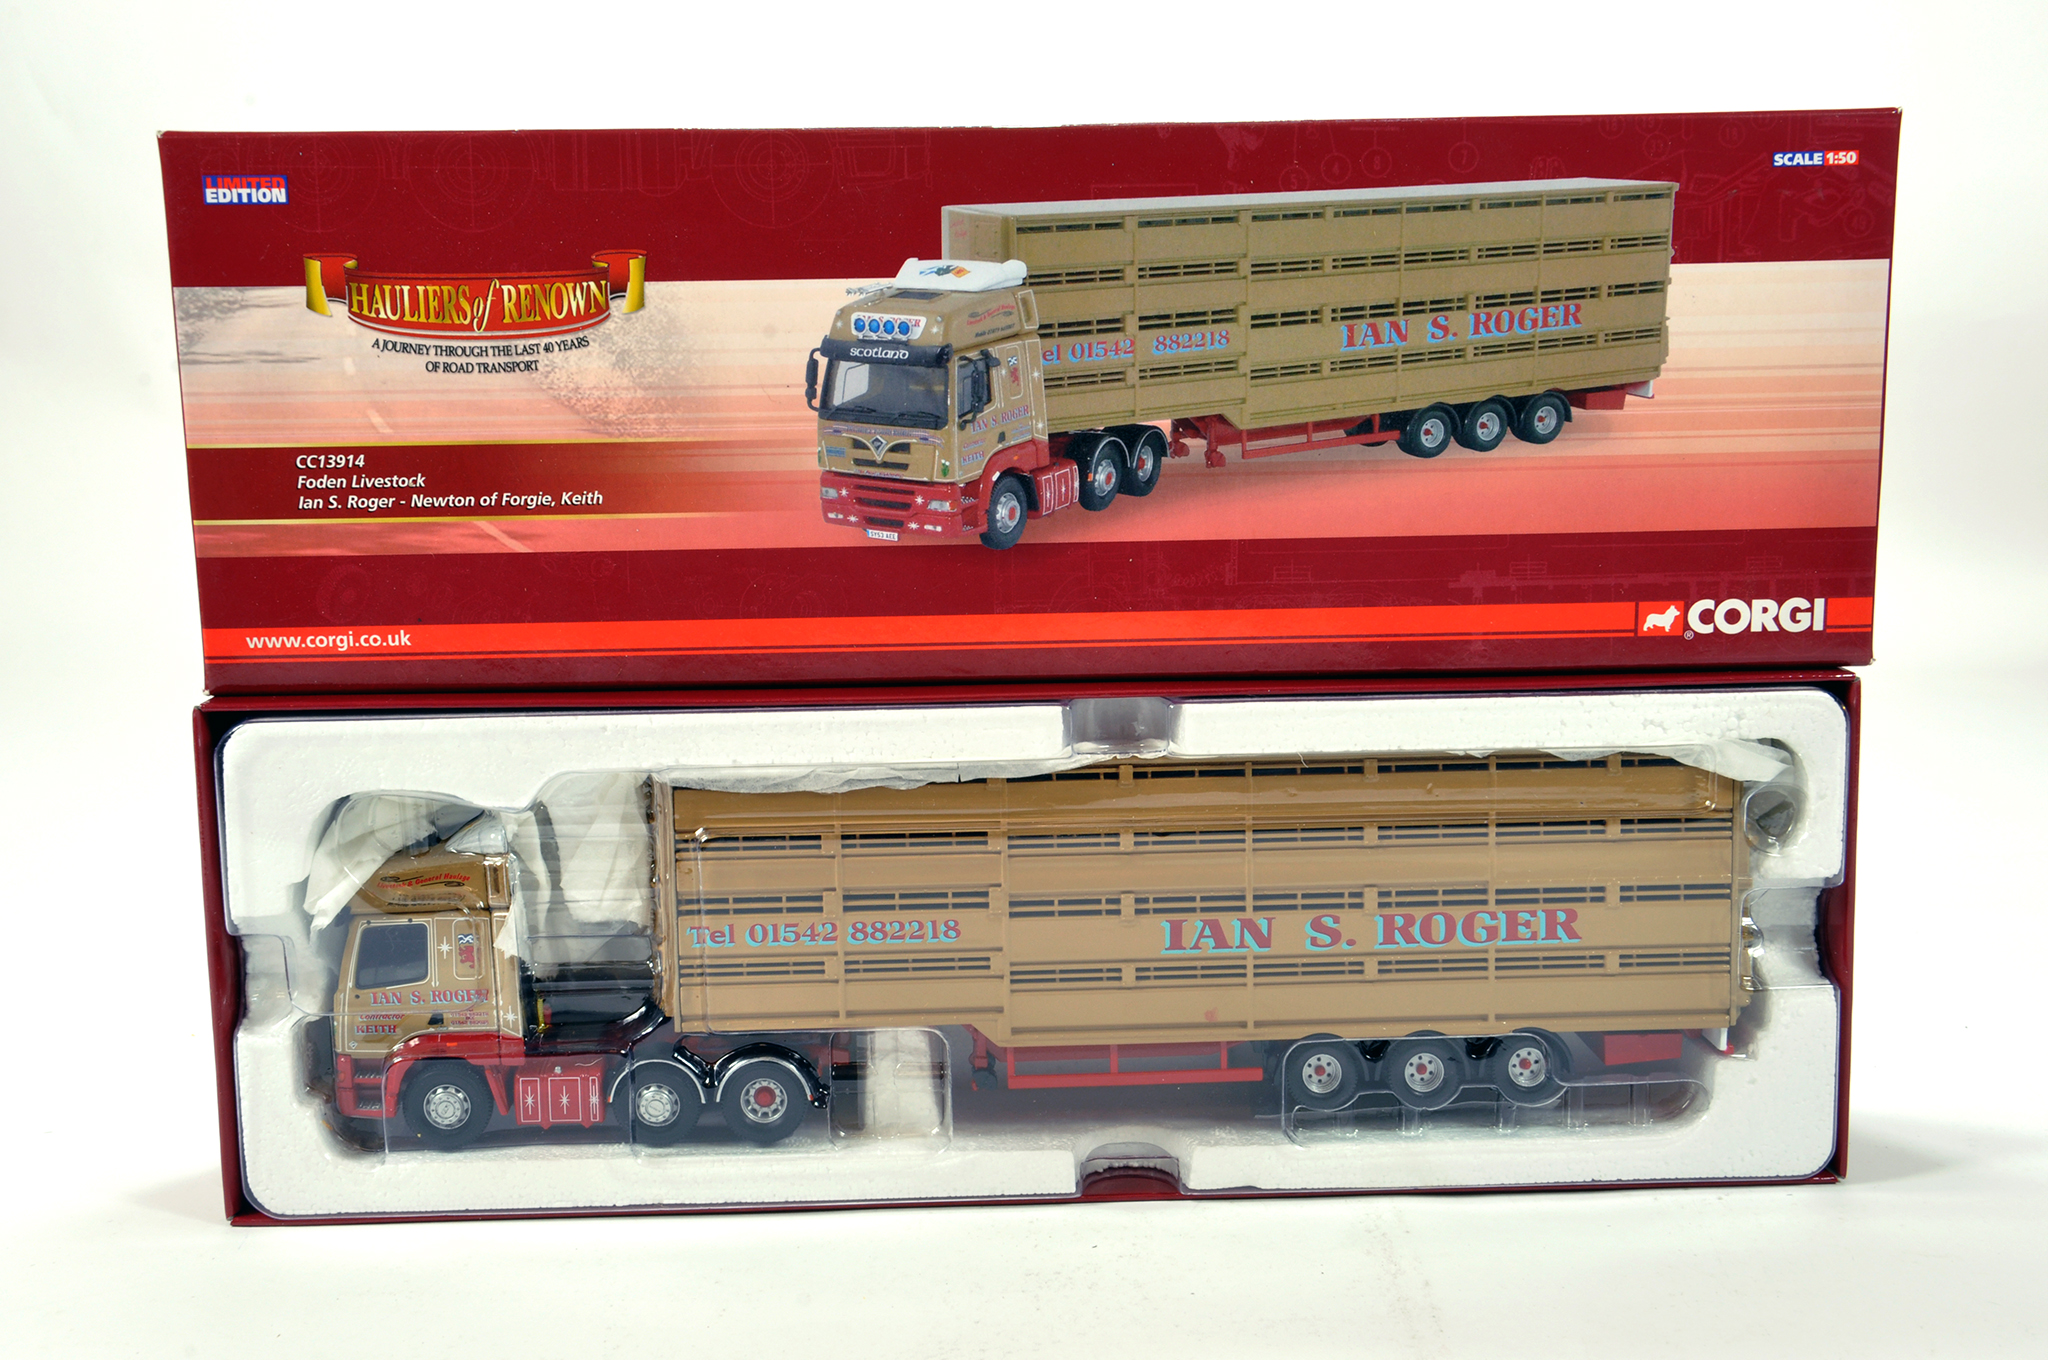 Lot 27 - Corgi 1/50 diecast truck issue comprising No. CC13914 Foden Livestock Transporter in livery of Ian S